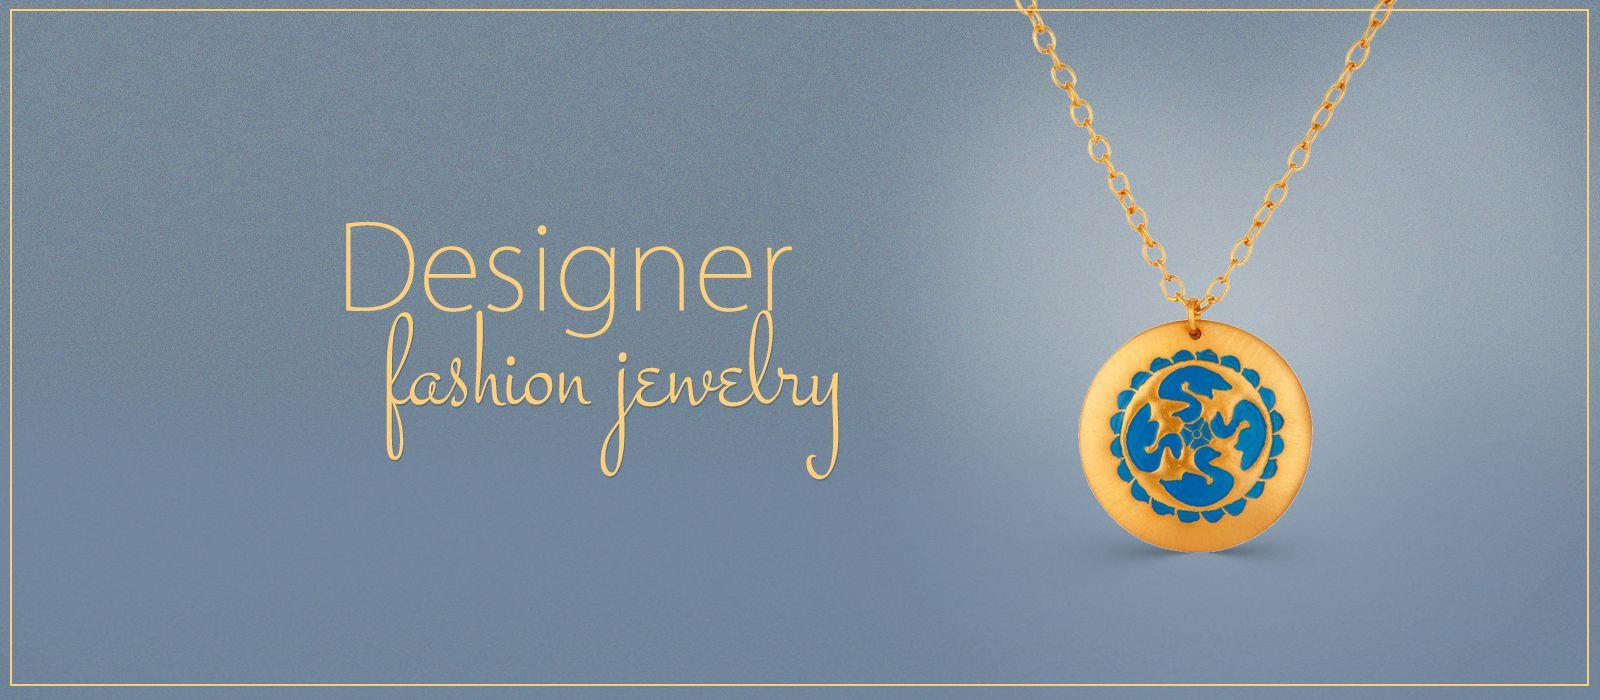 Fashion jewelry designers